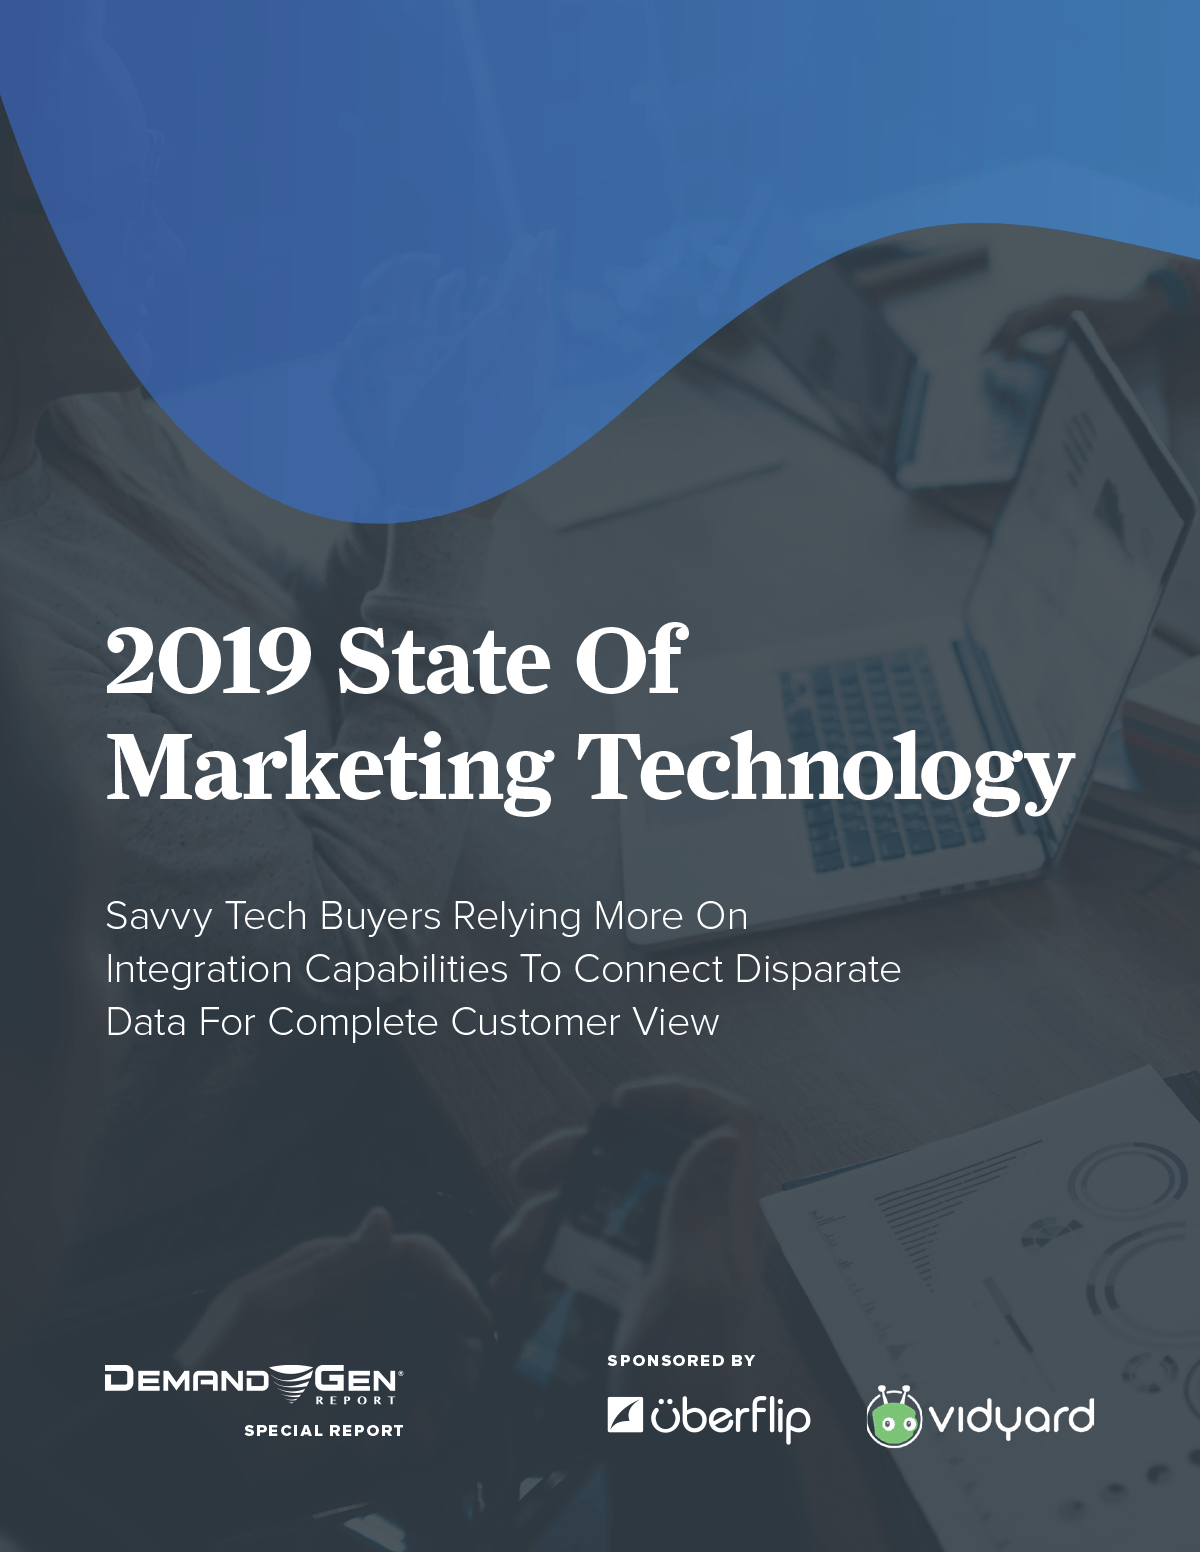 2019 State of Marketing Technology Report